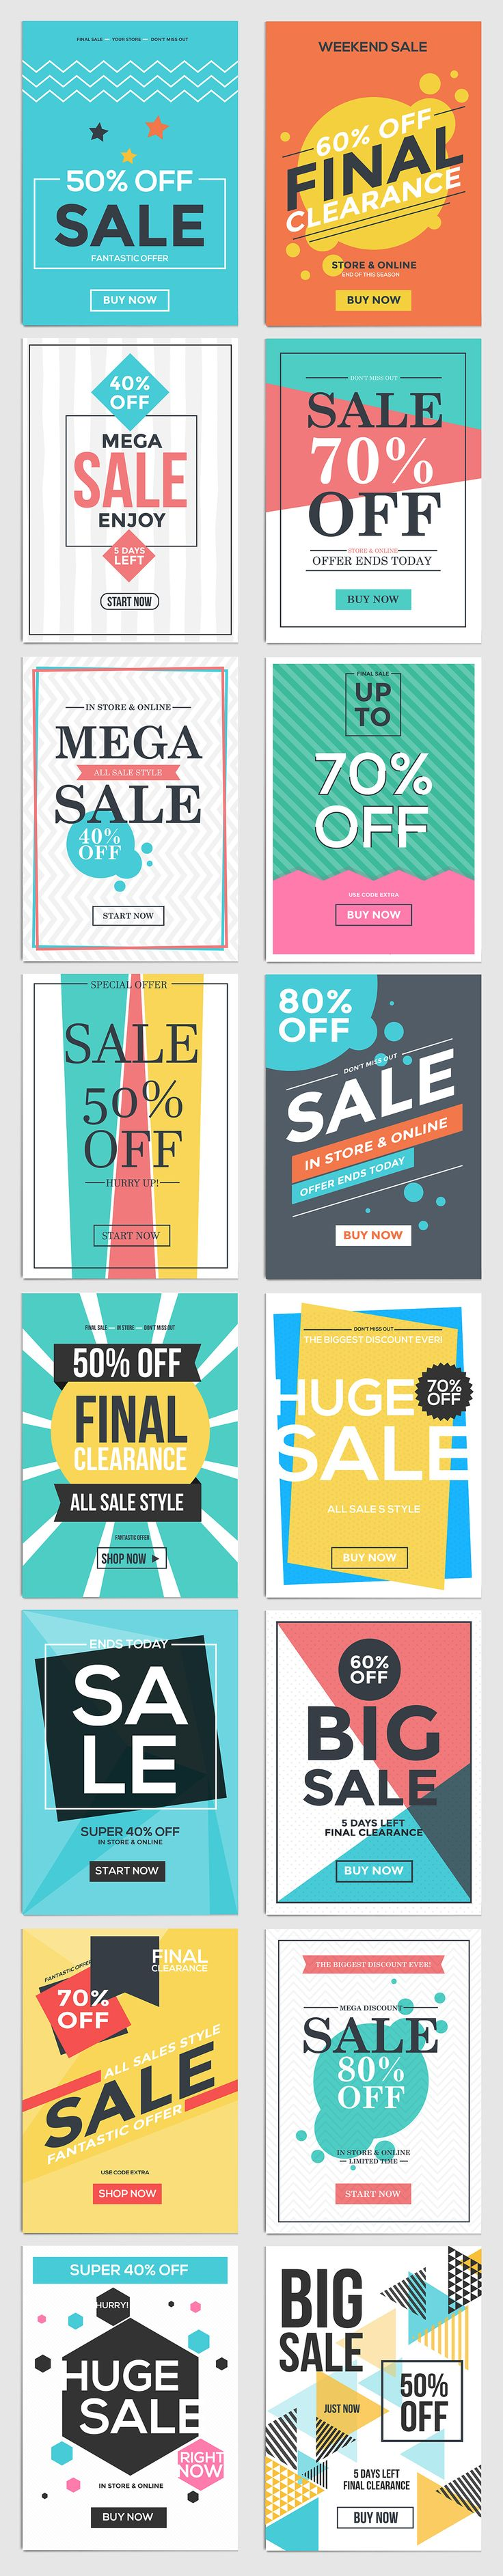 best ideas about flyer design graphic design flat design flyer templates